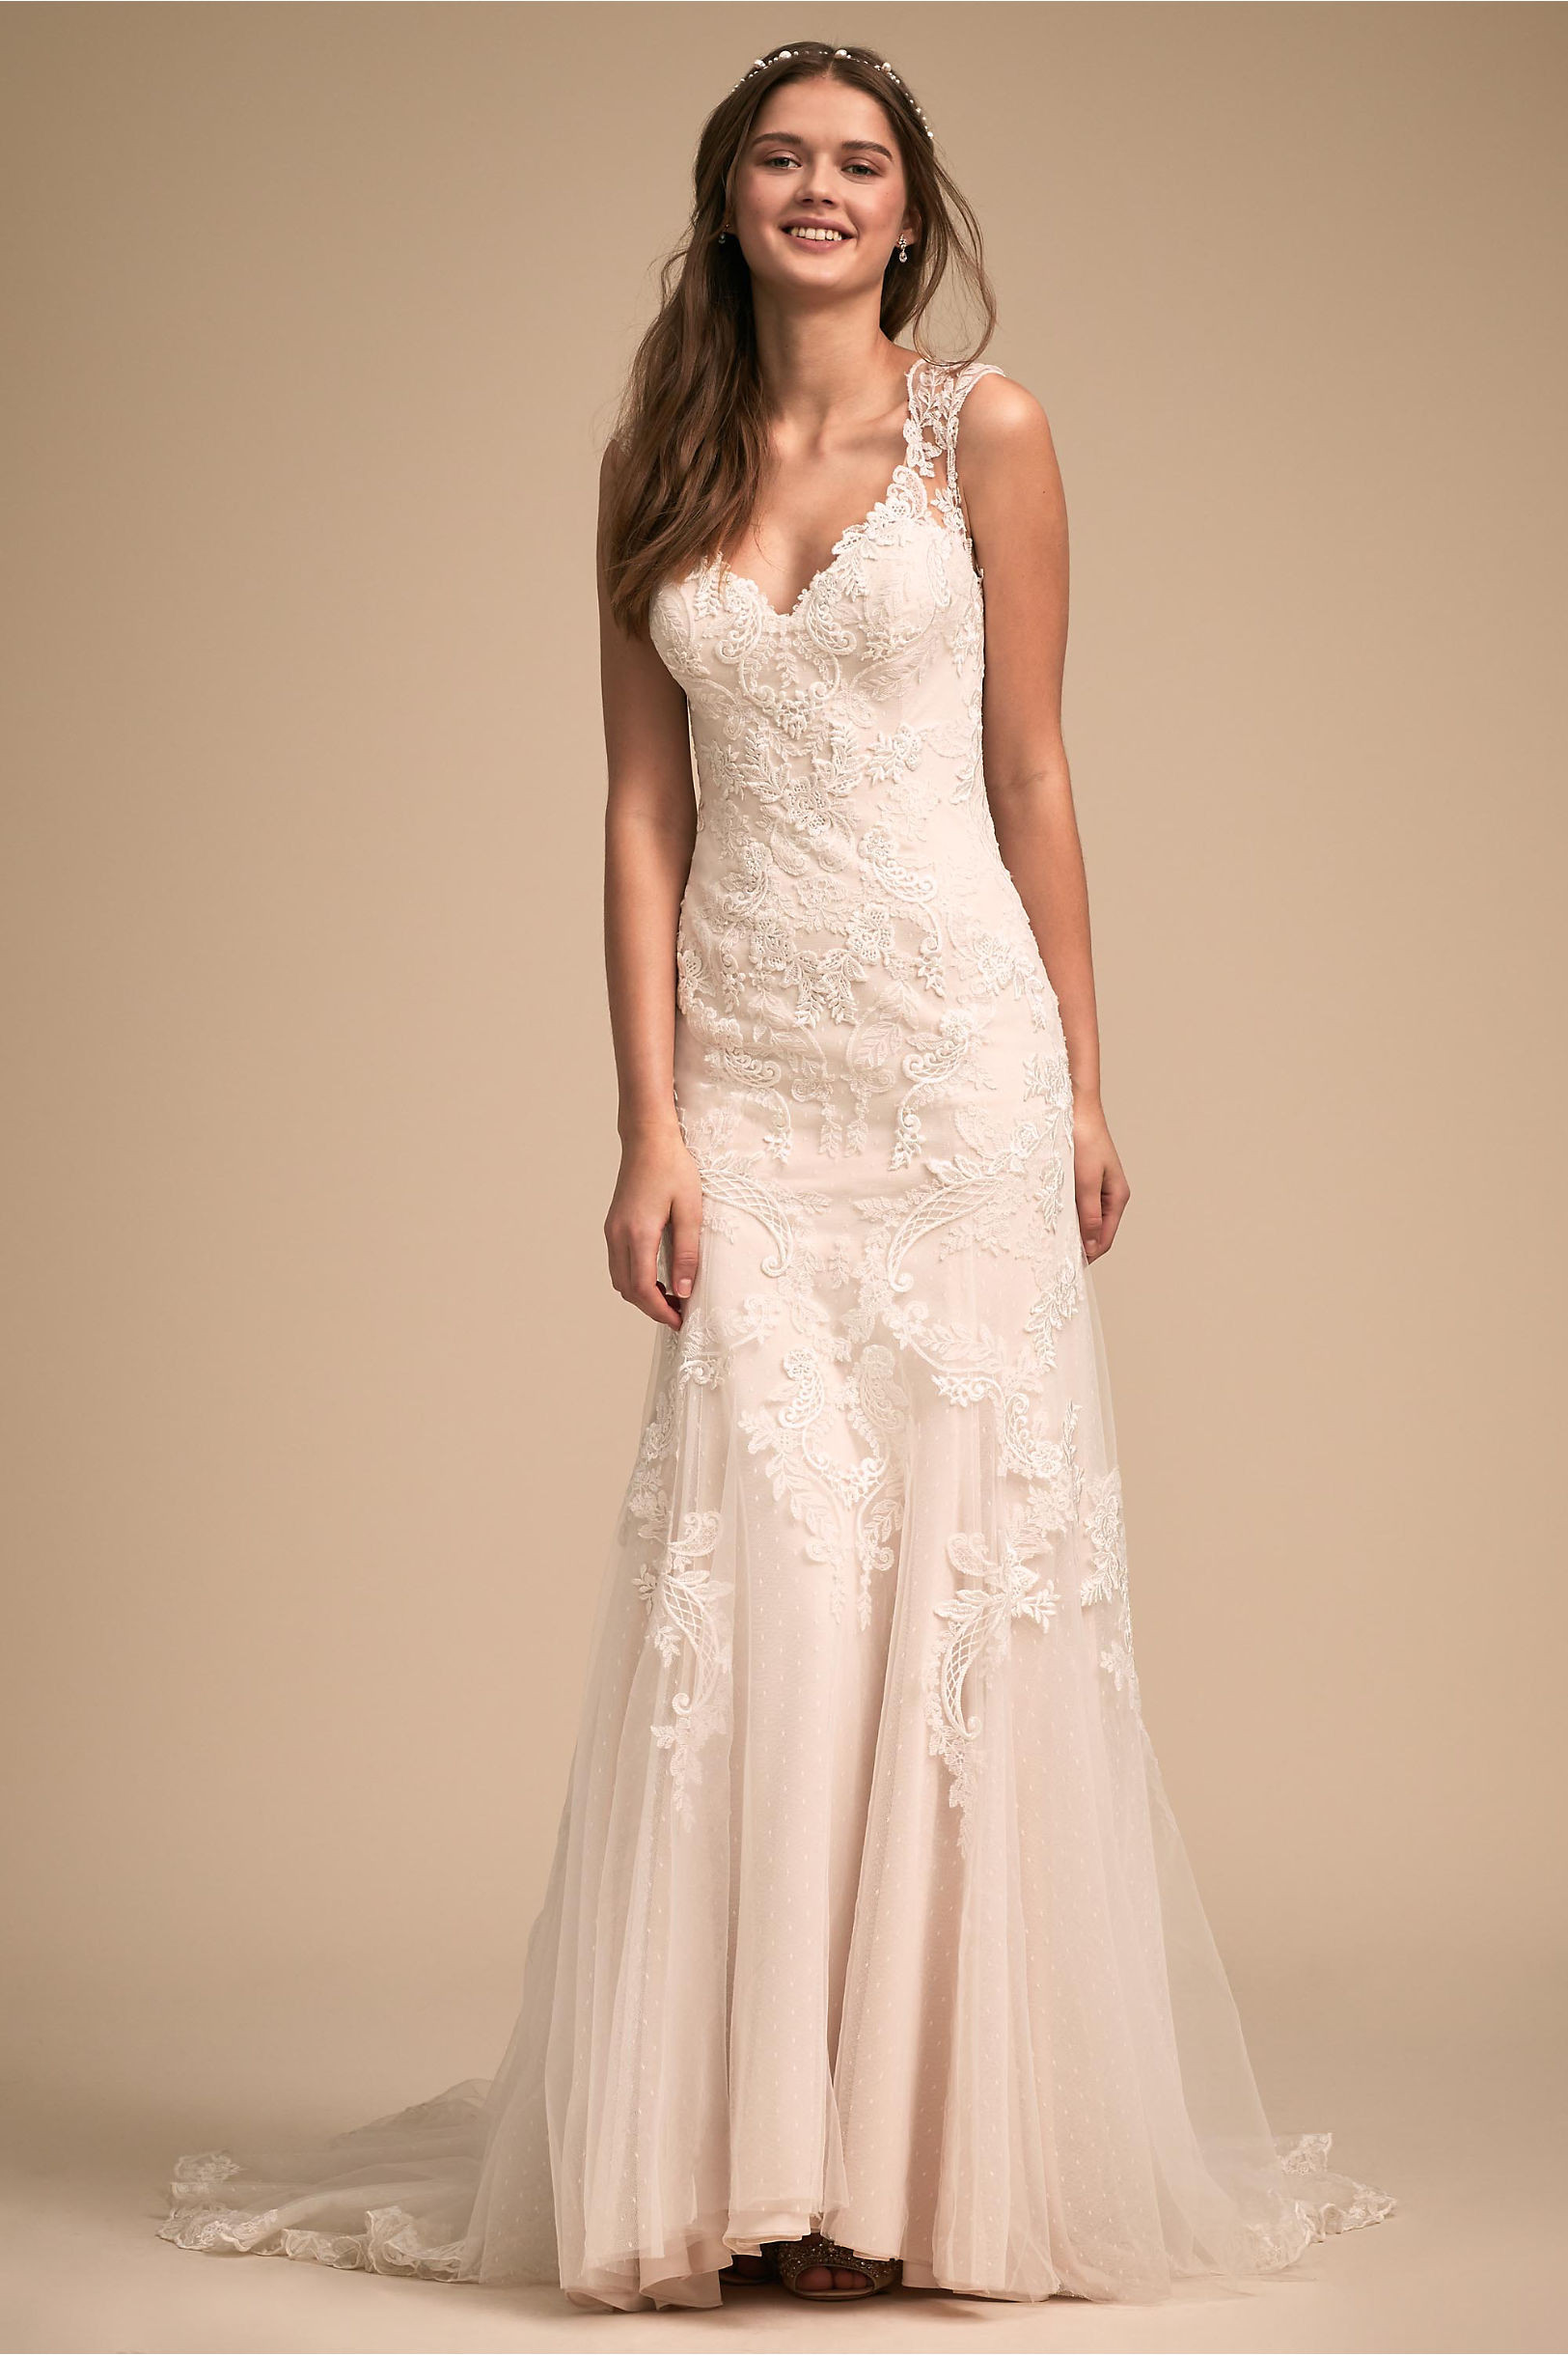 Lace Wedding Gowns  12 Most Romantic Wedding Dresses Ever